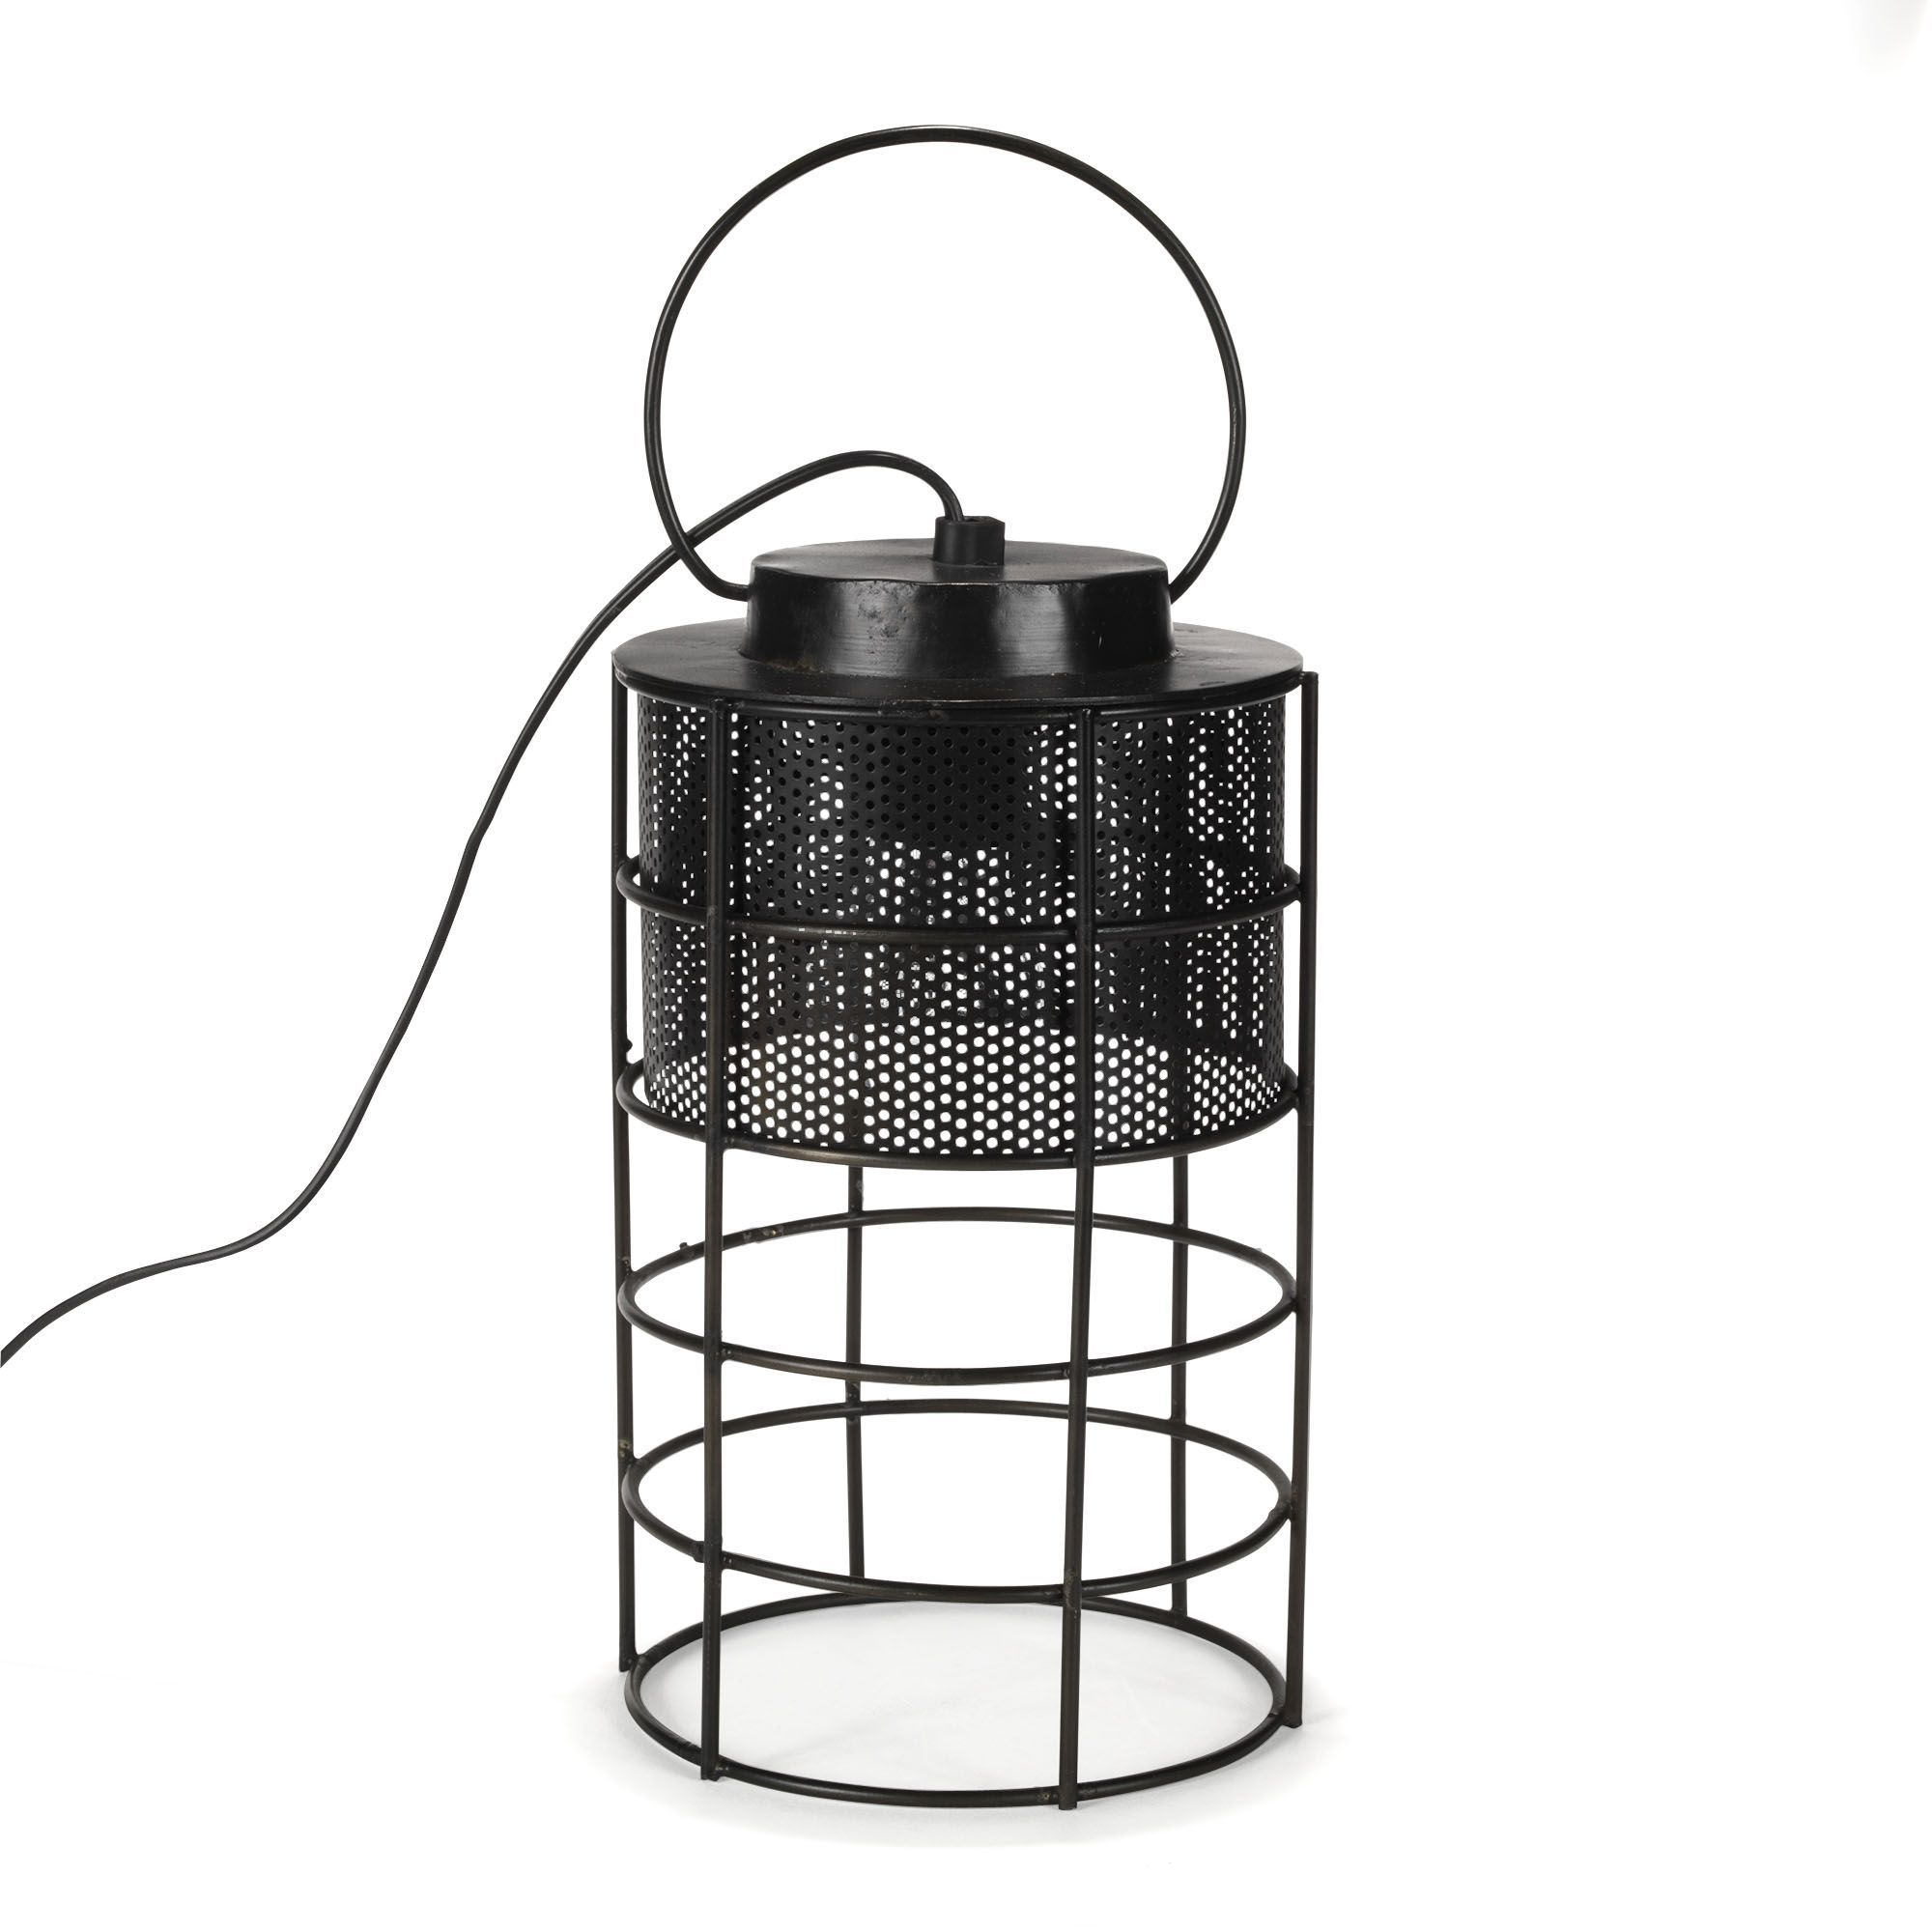 lampe baladeuse style industriel noir oxyd faraday. Black Bedroom Furniture Sets. Home Design Ideas